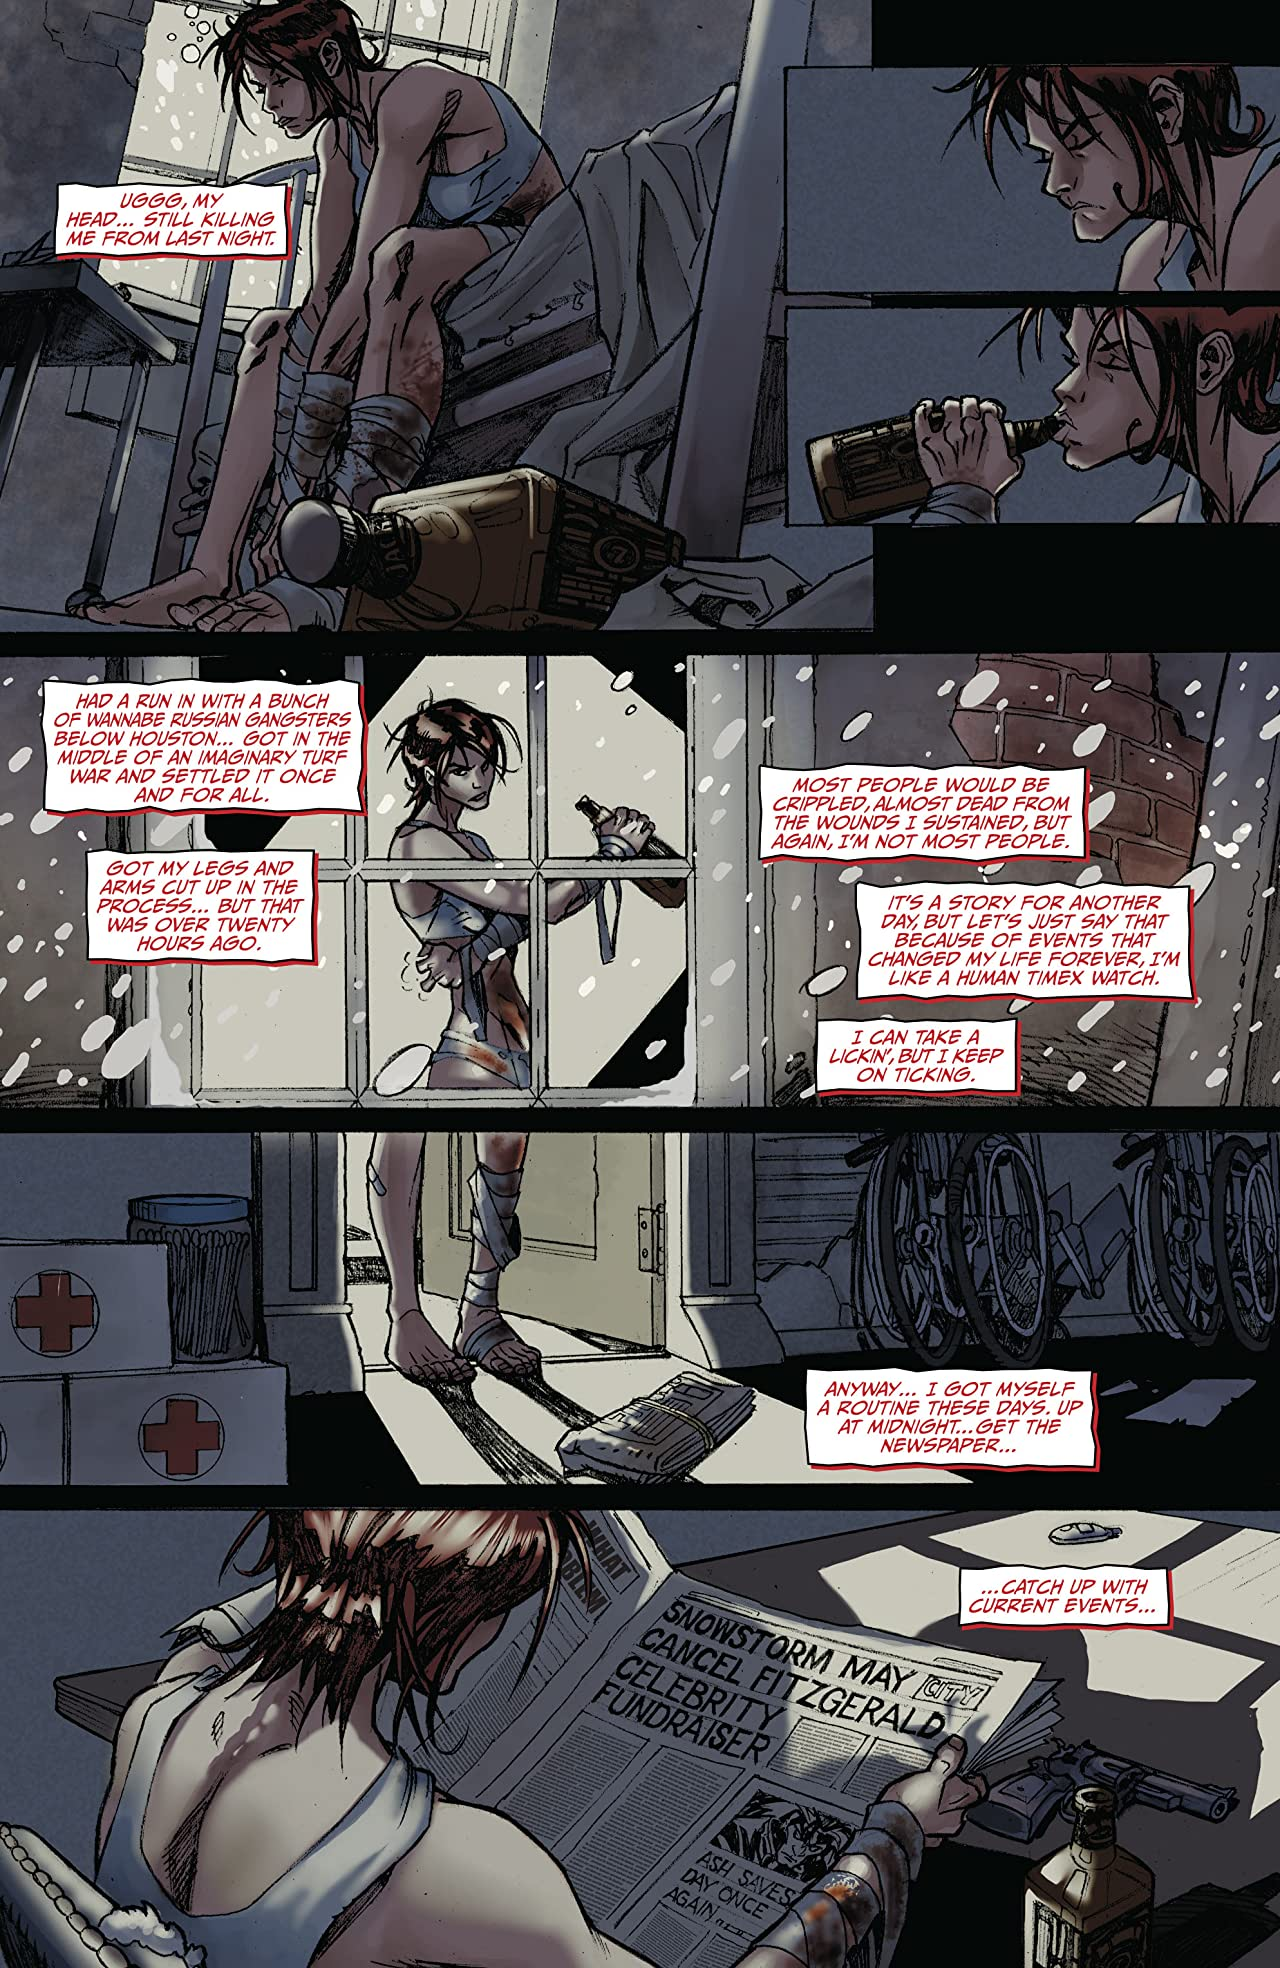 Painkiller Jane (2006) #1